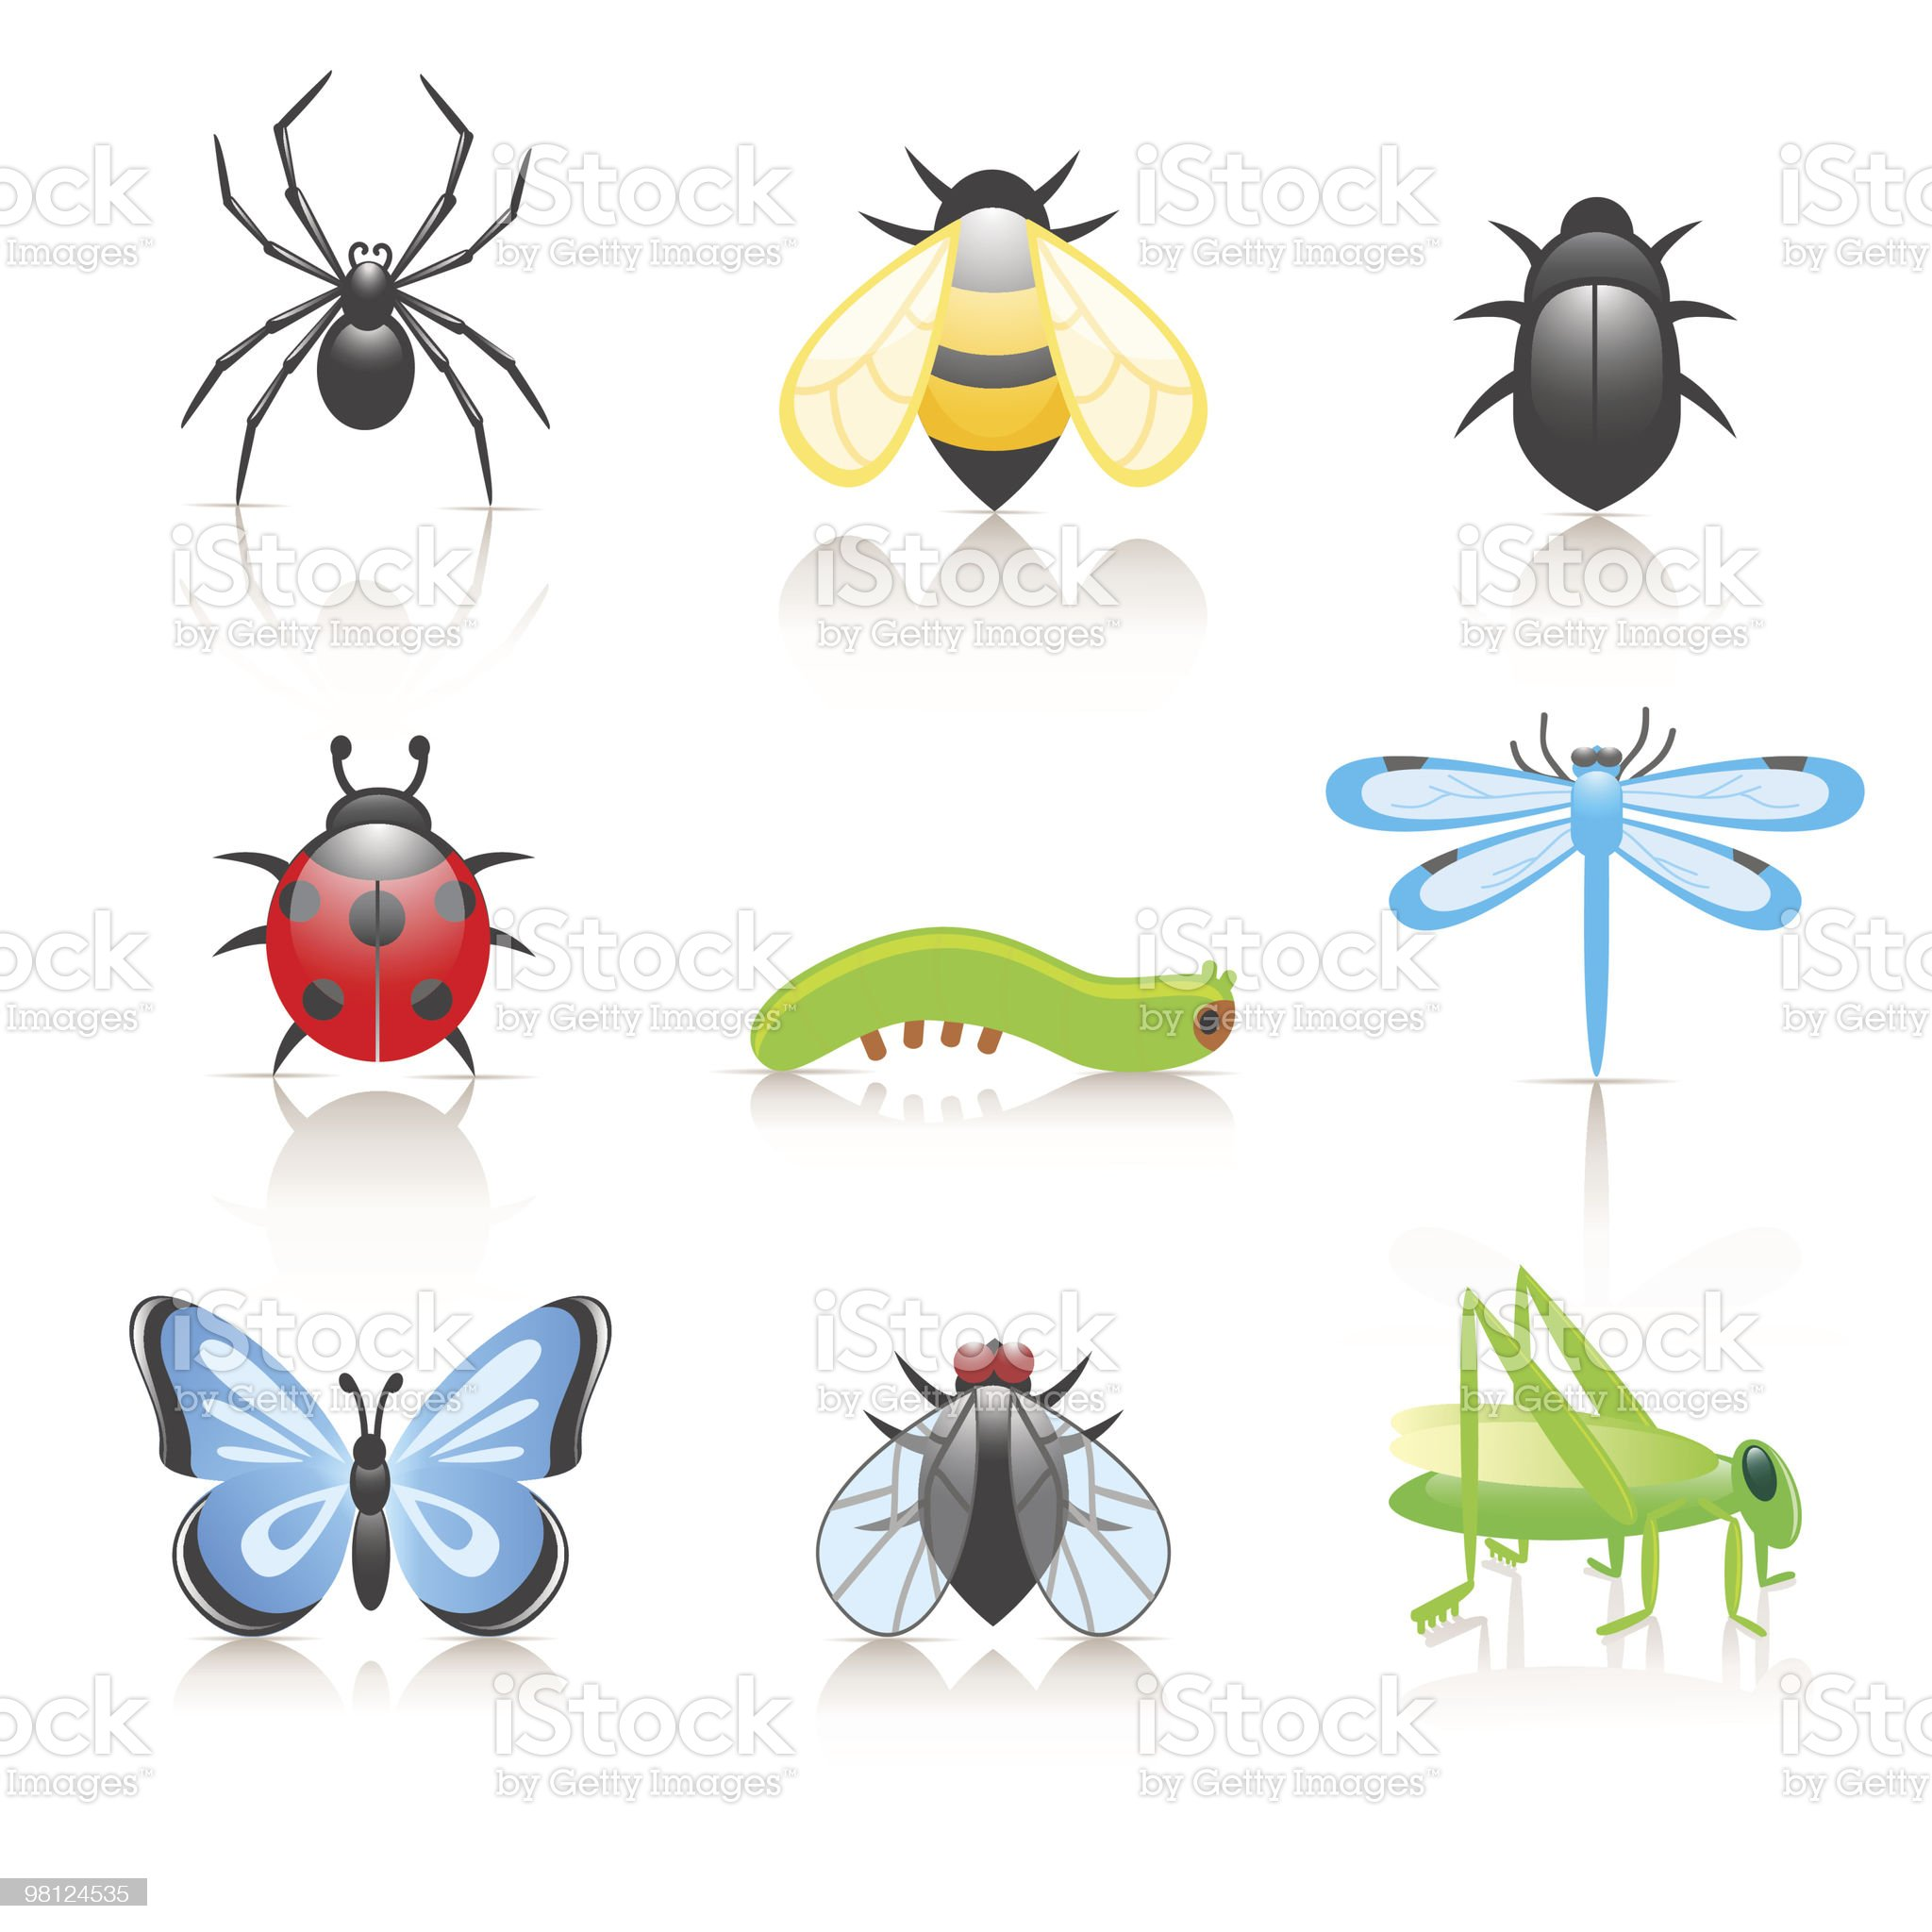 Cartoon insect icon set royalty-free stock vector art